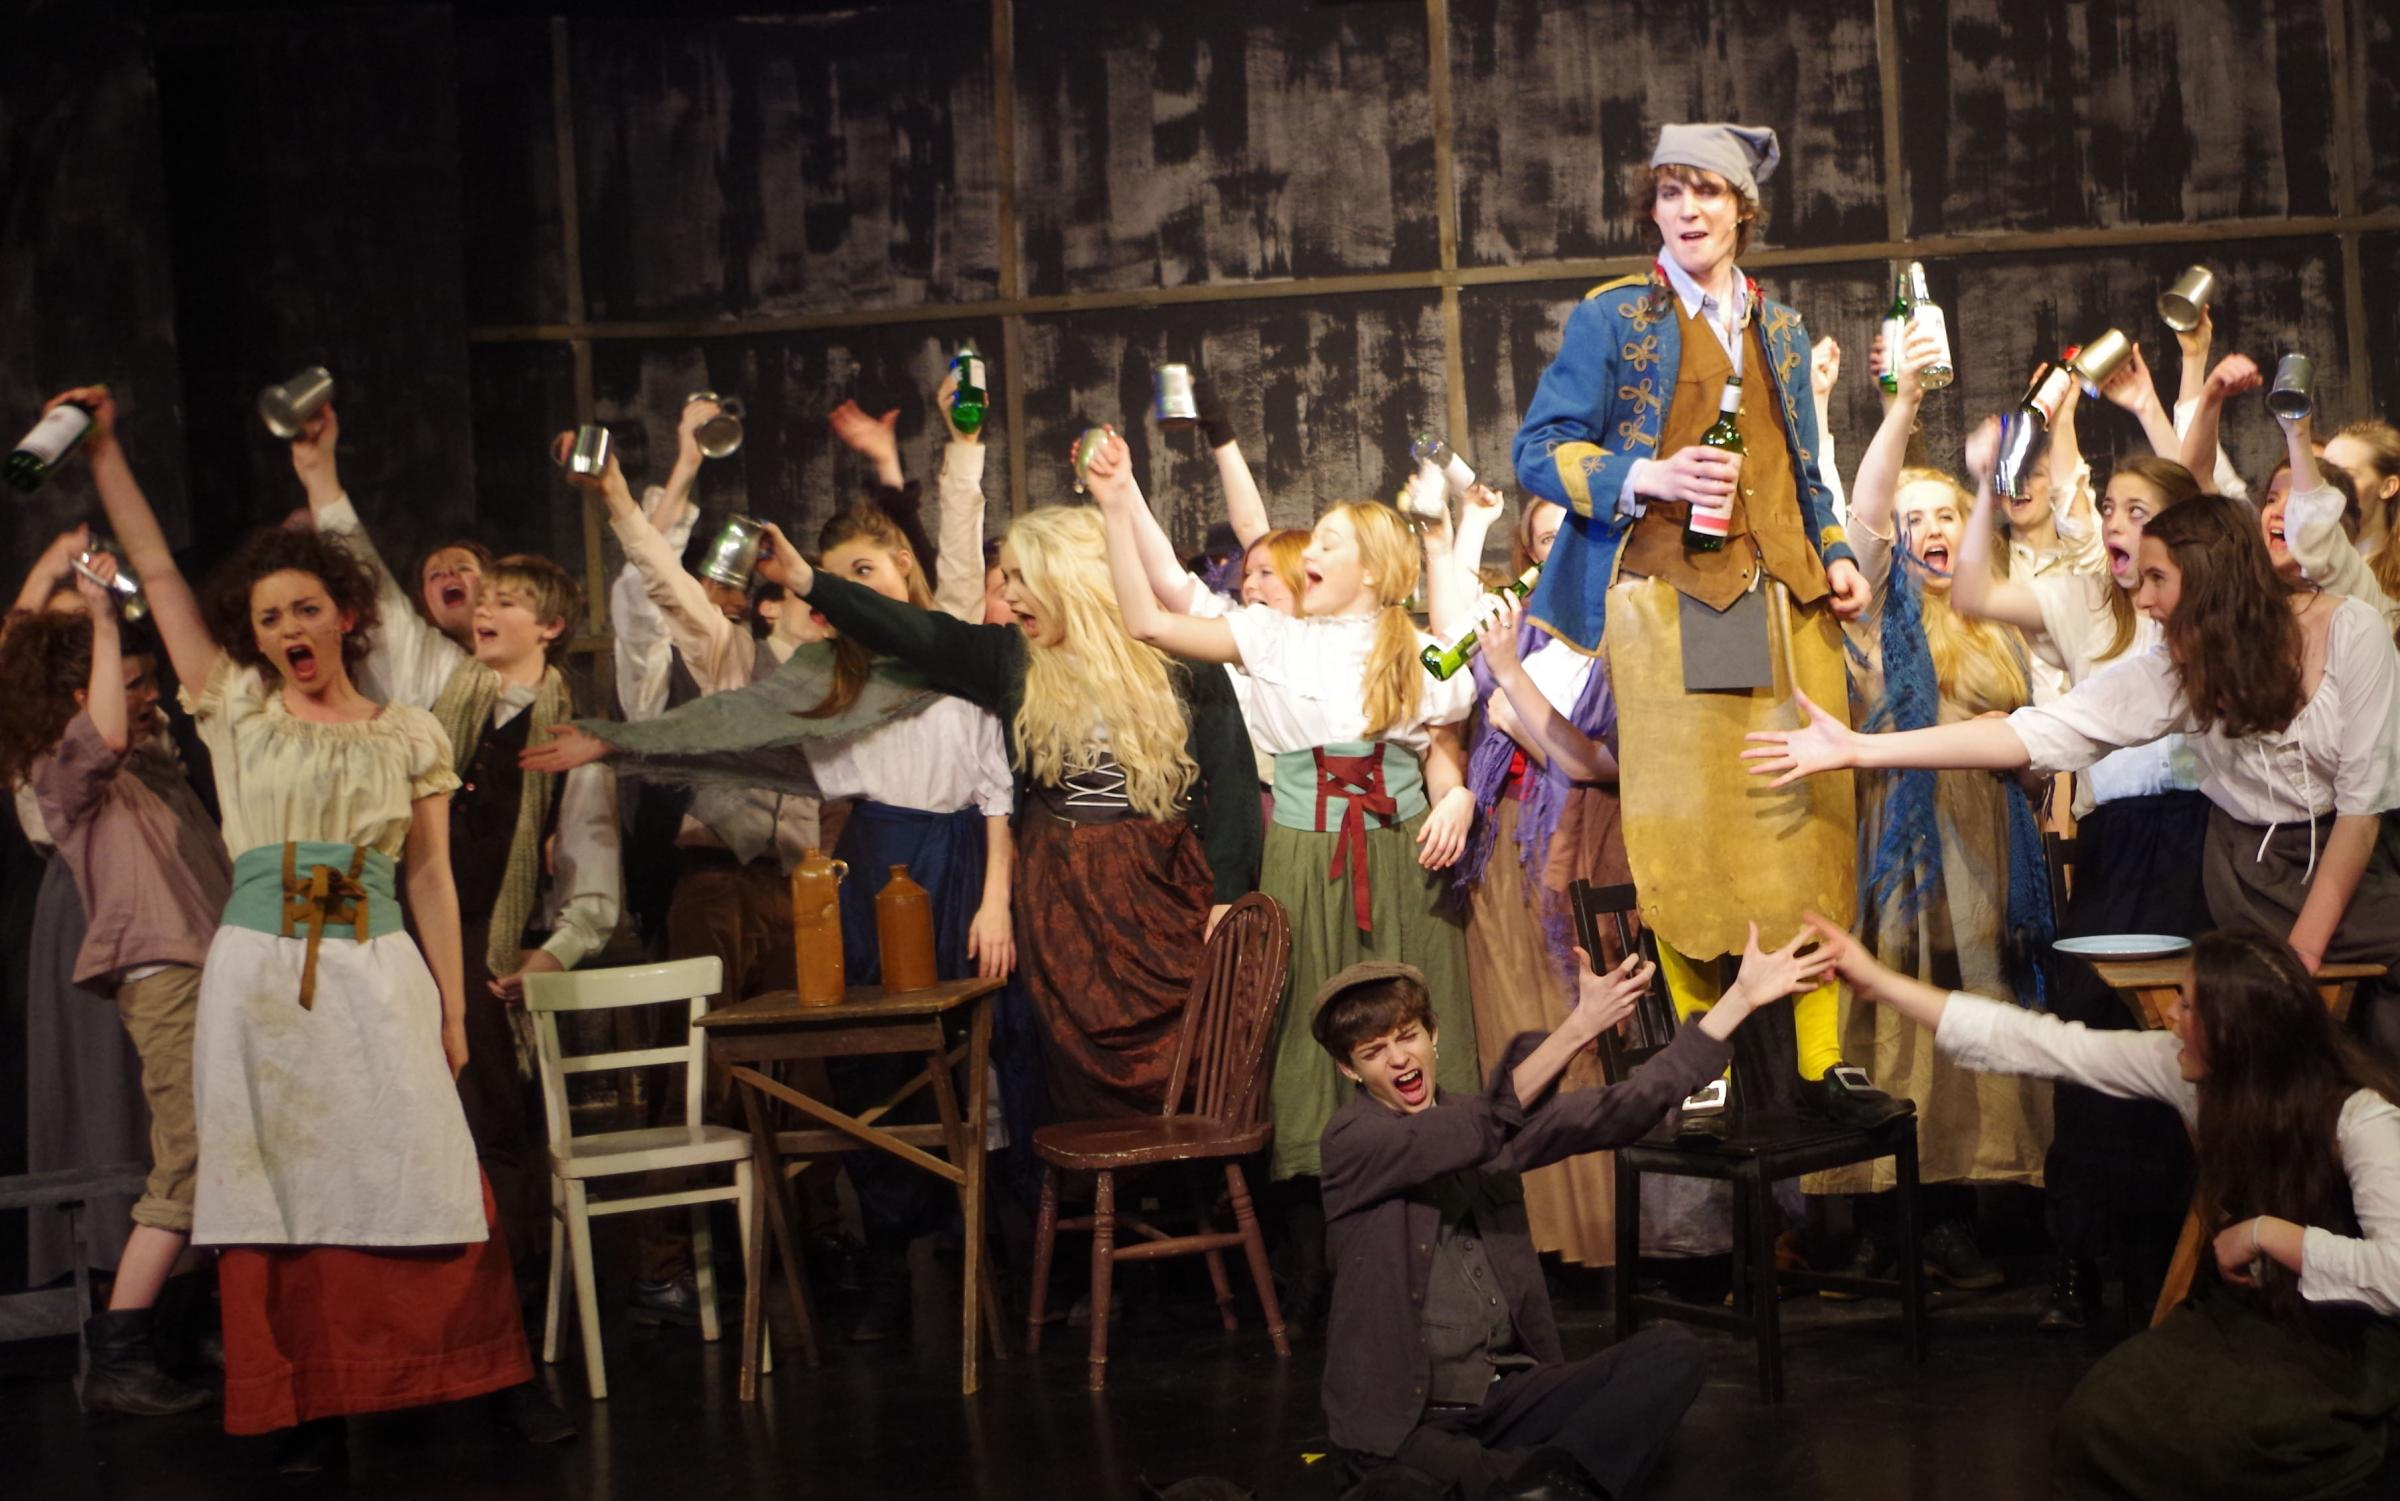 School Les Miserables production a sell-out success